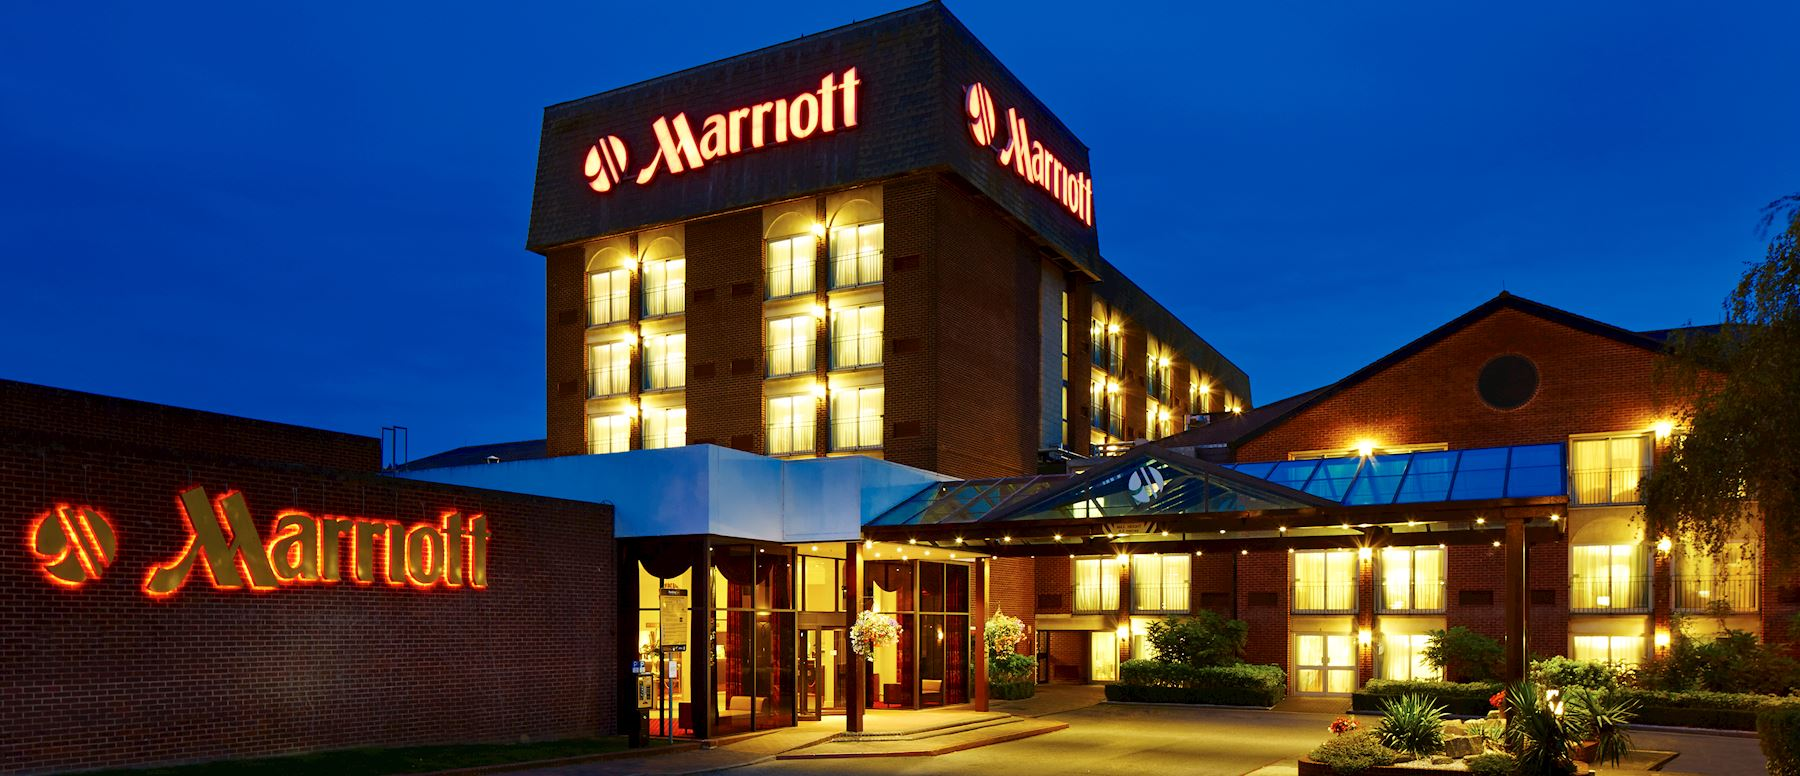 Heathrow Windsor Marriott Hotel